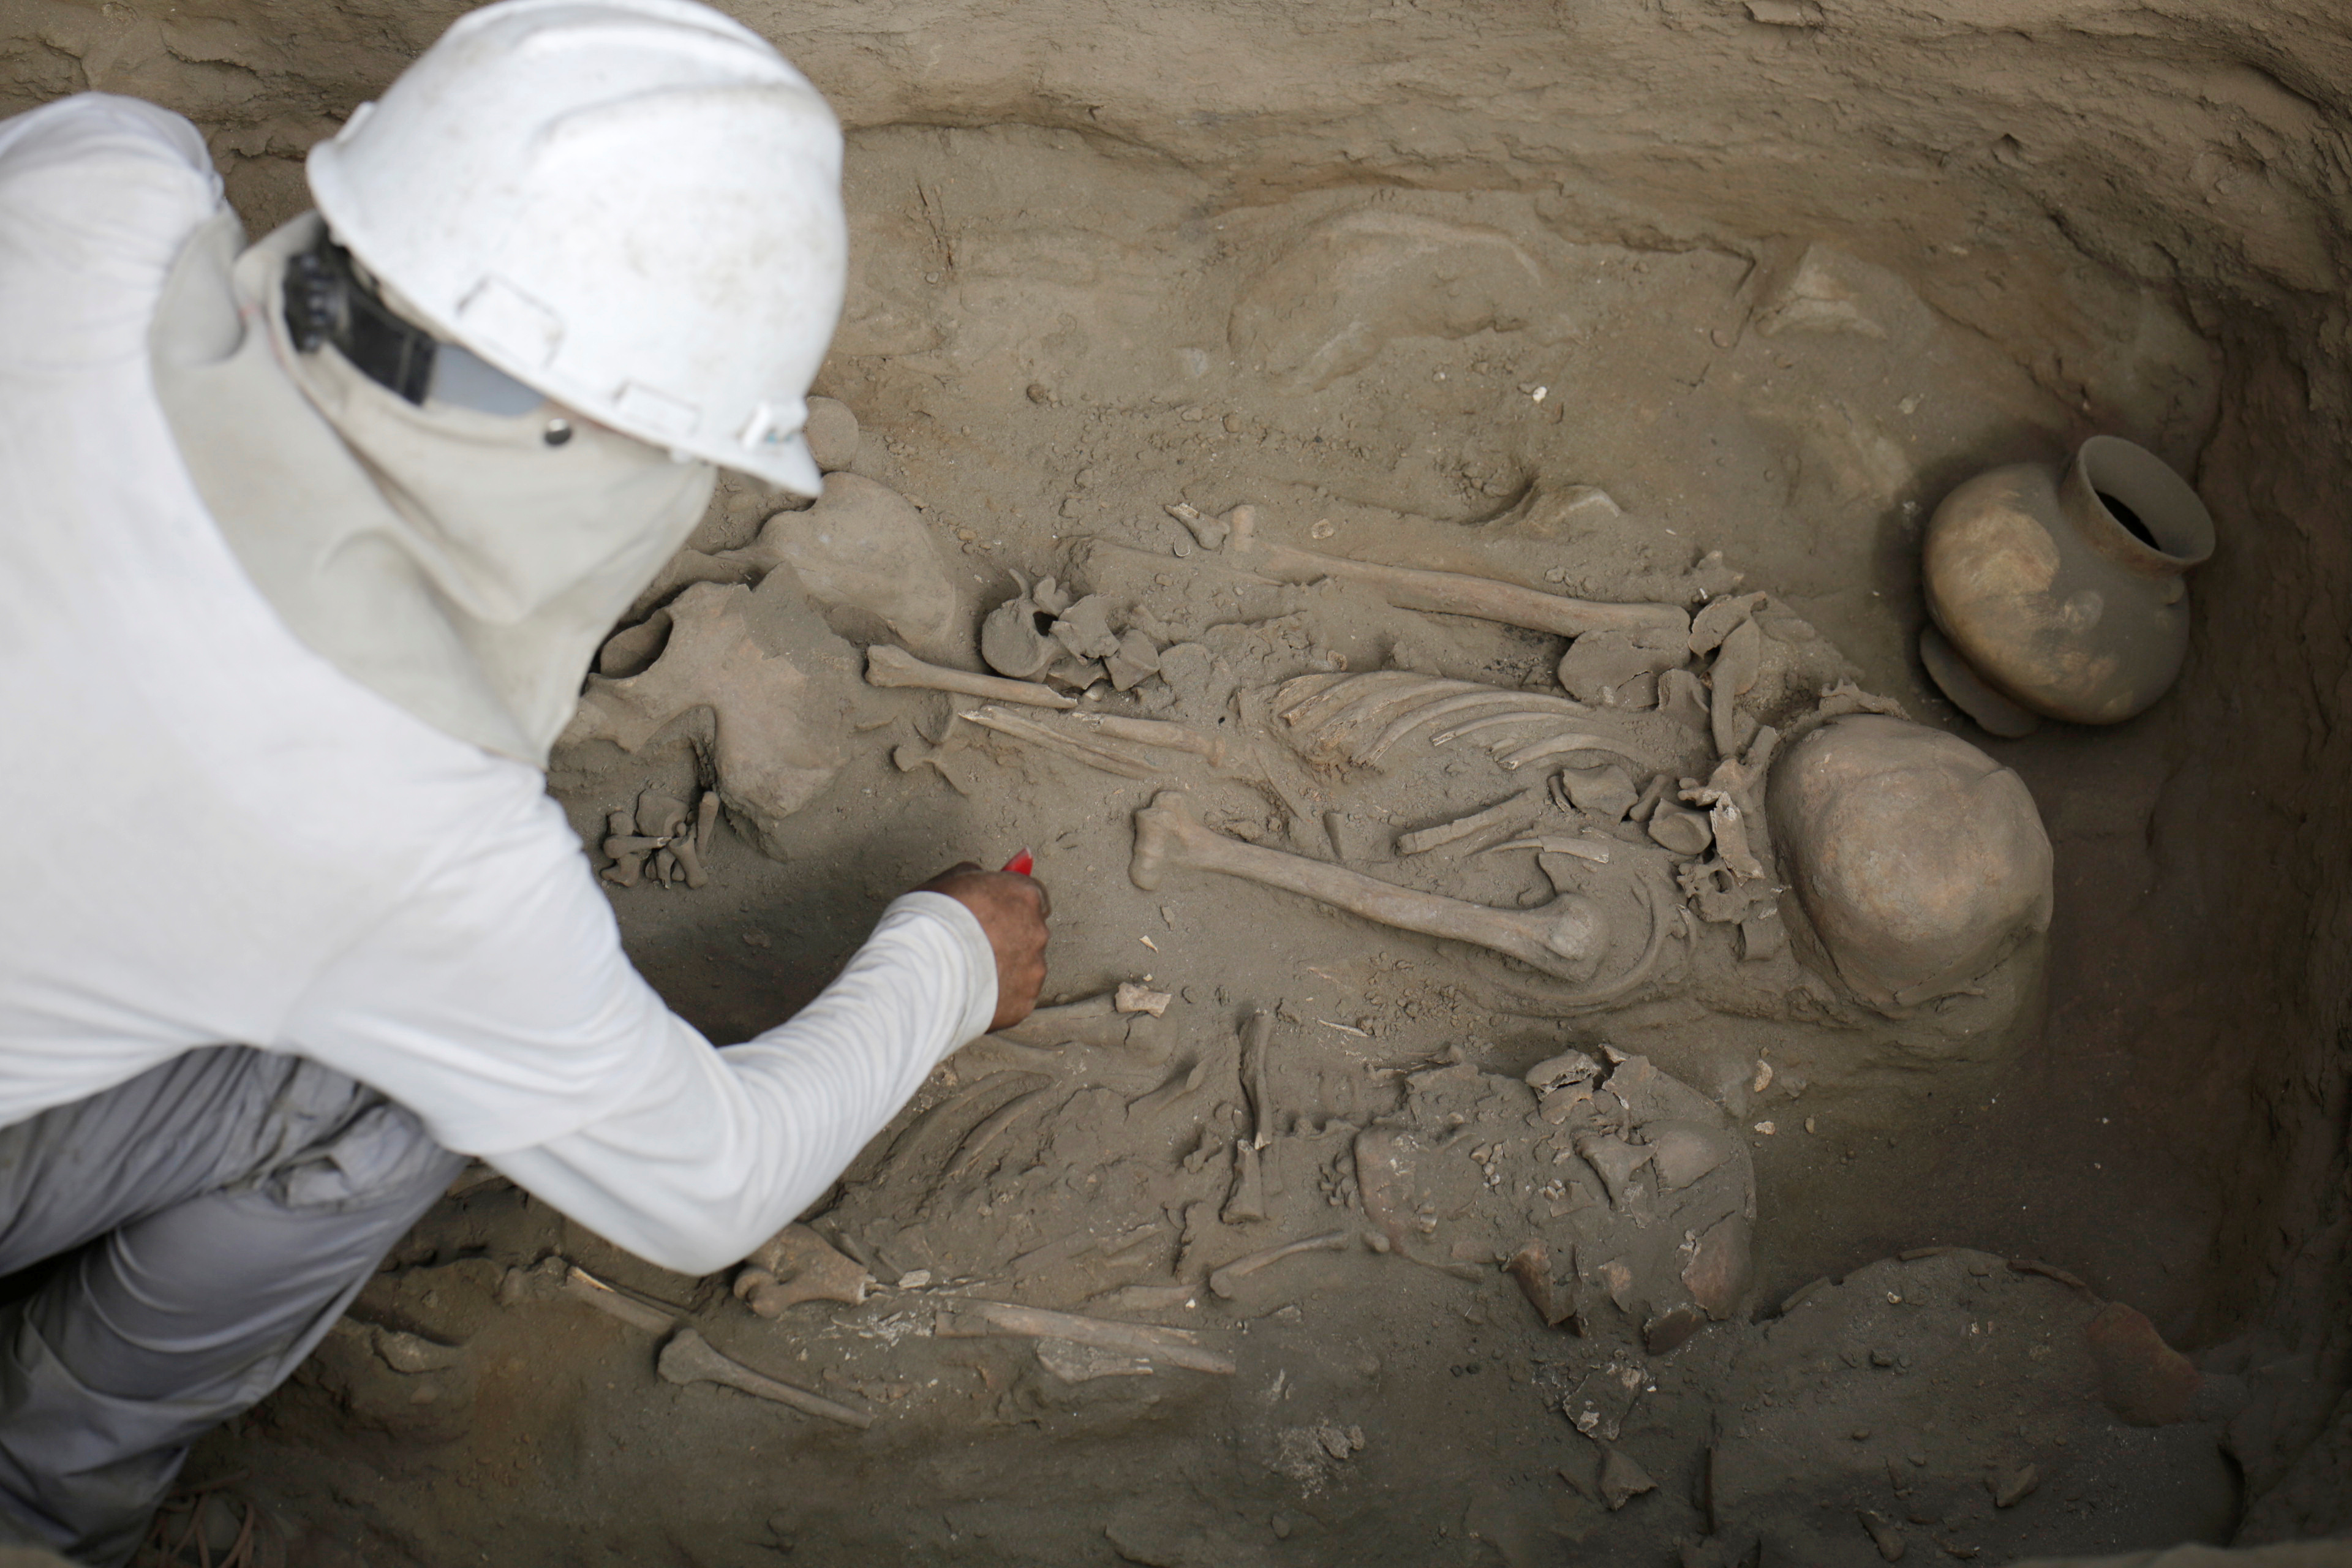 Archaeologists unearth tombs and human remains from the Chimu culture in Trujillo, Peru, on March 21, 2018. Recent discoveries have led to new understandings about the site